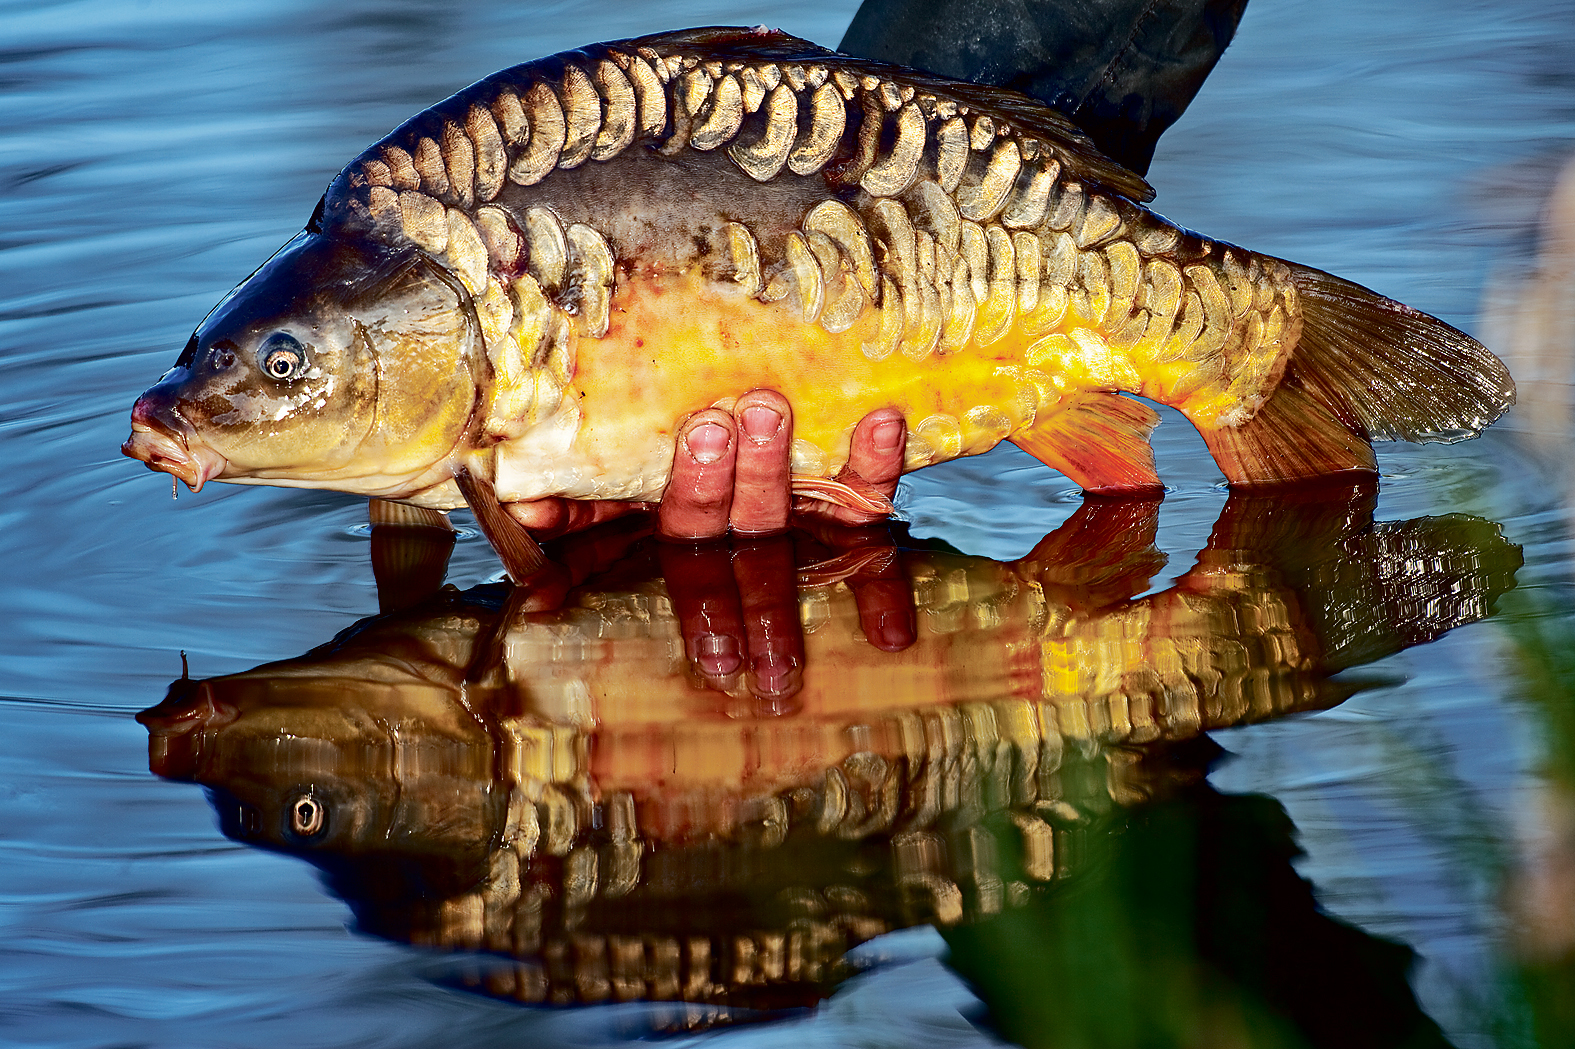 Using the strong reflection of the mirror carp to enhance this picture